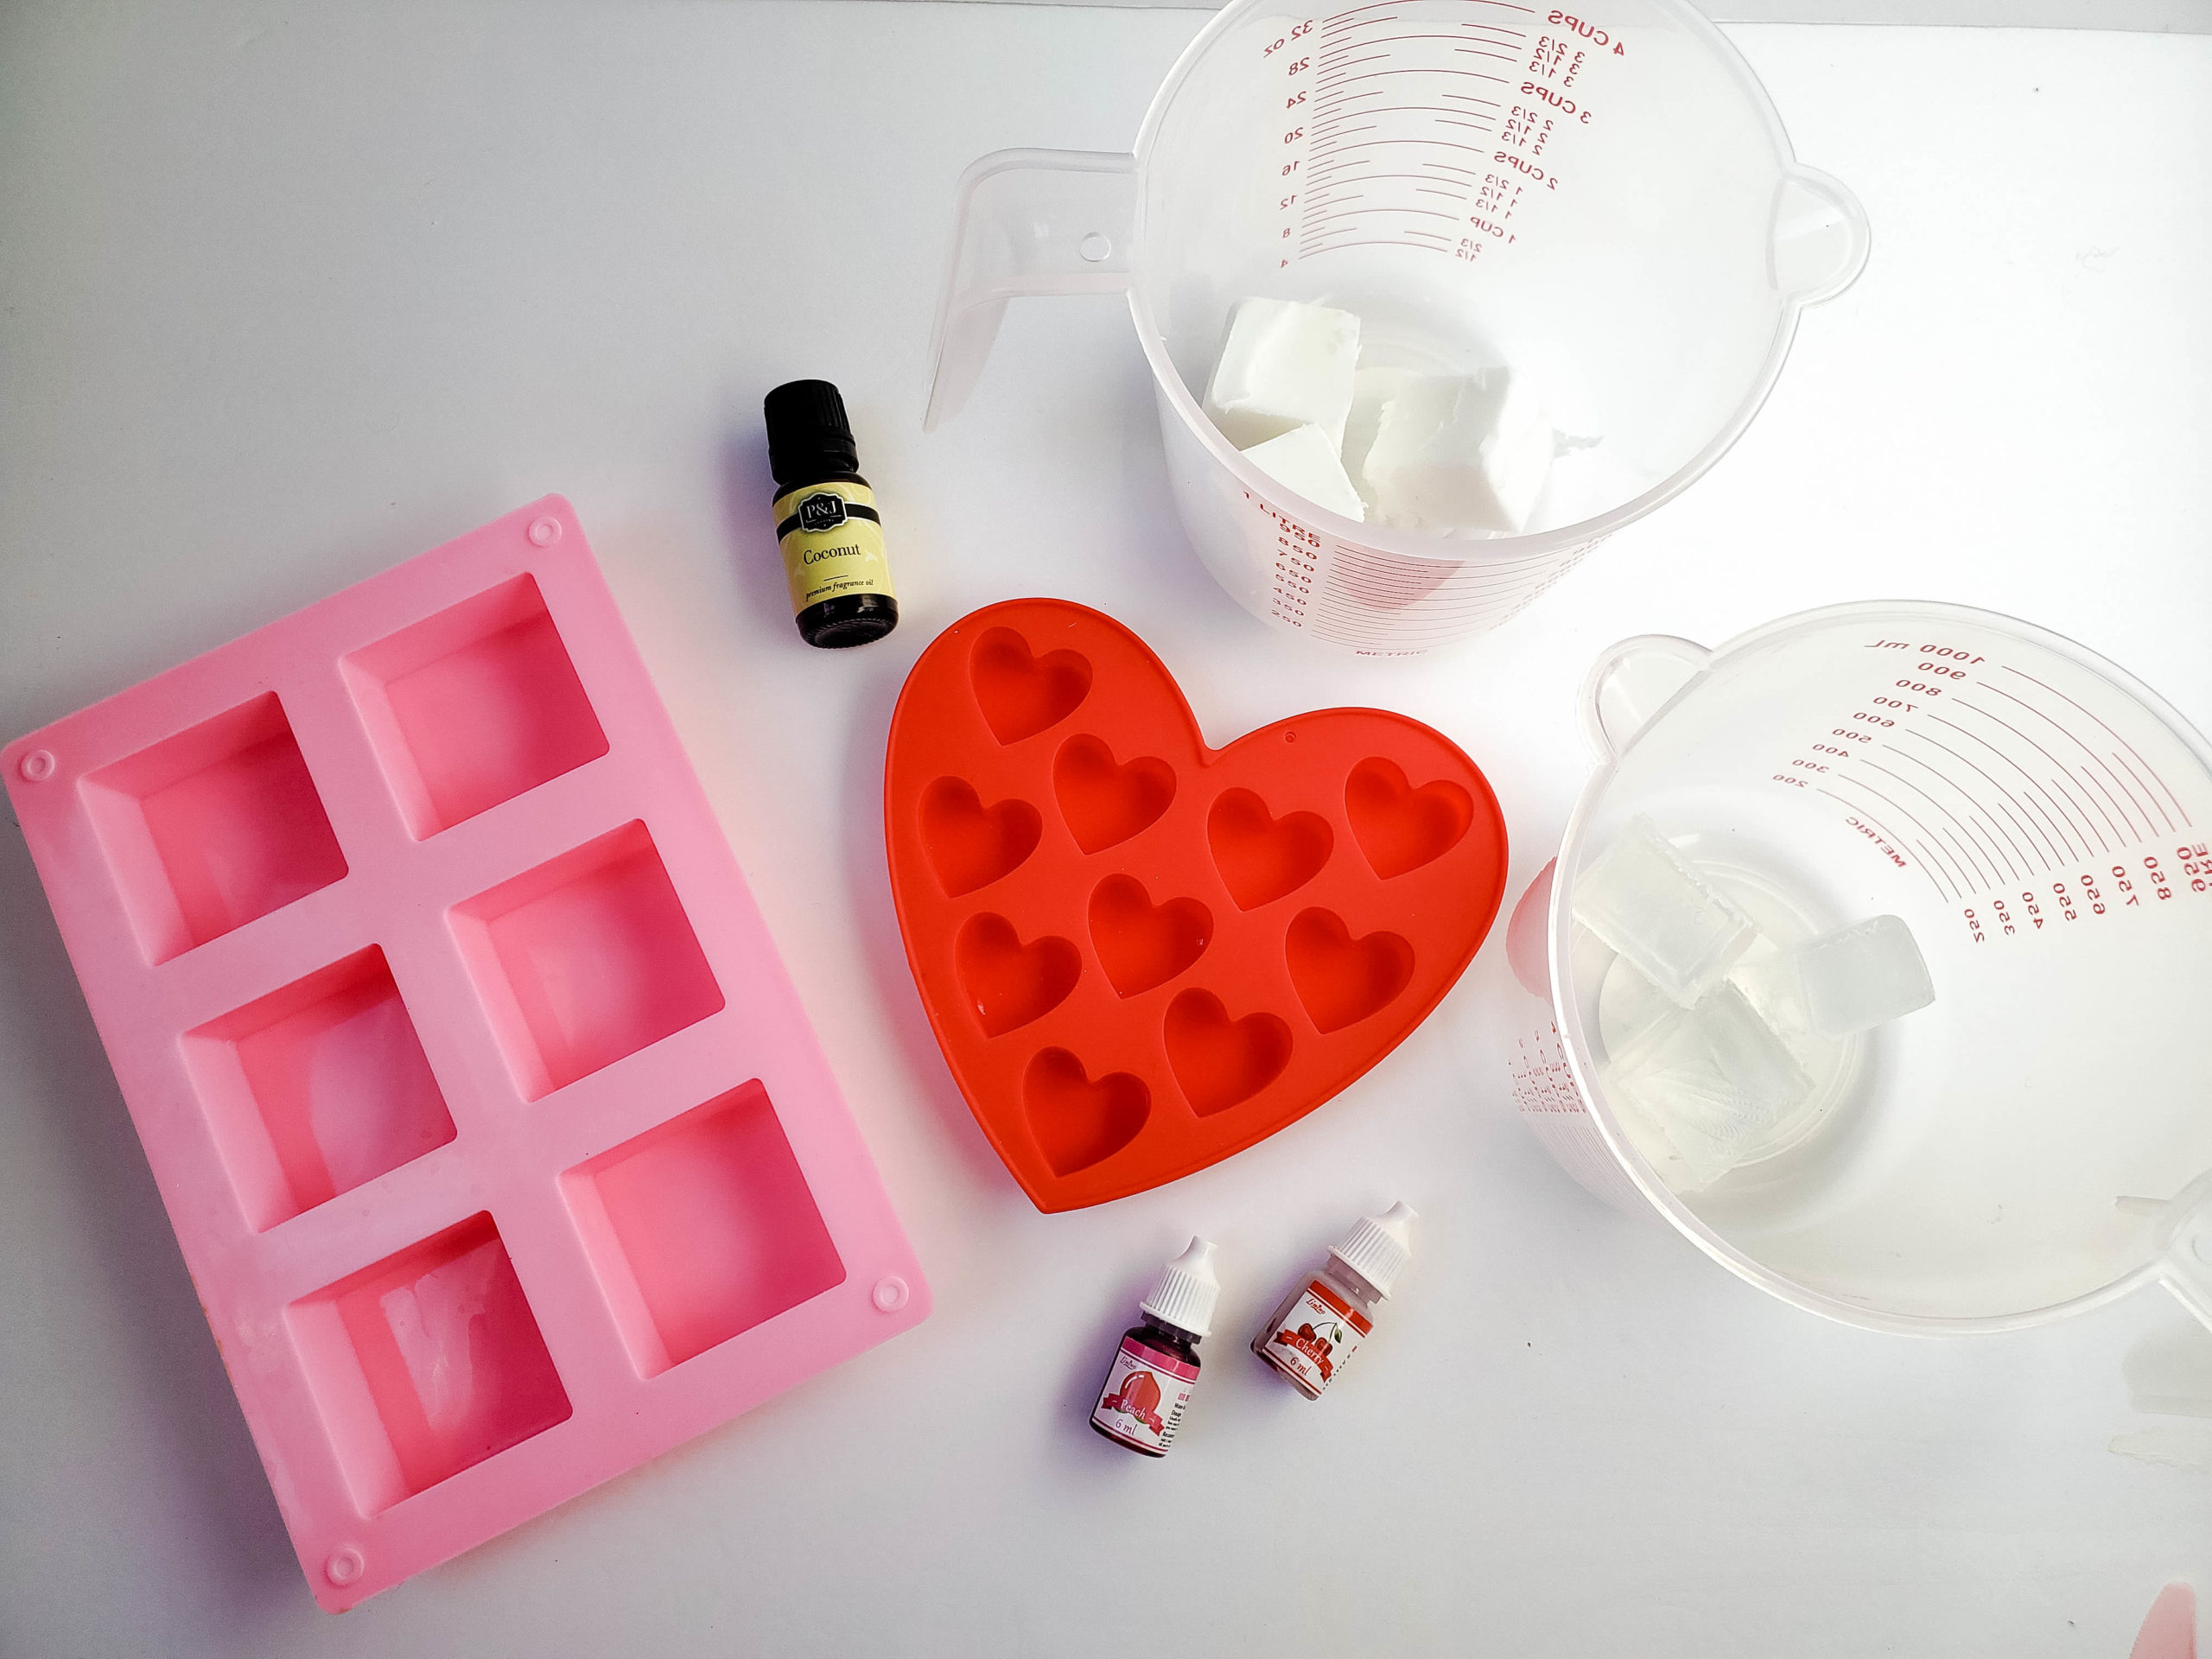 Coconut Valentine's Soaps with Hearts ingredients